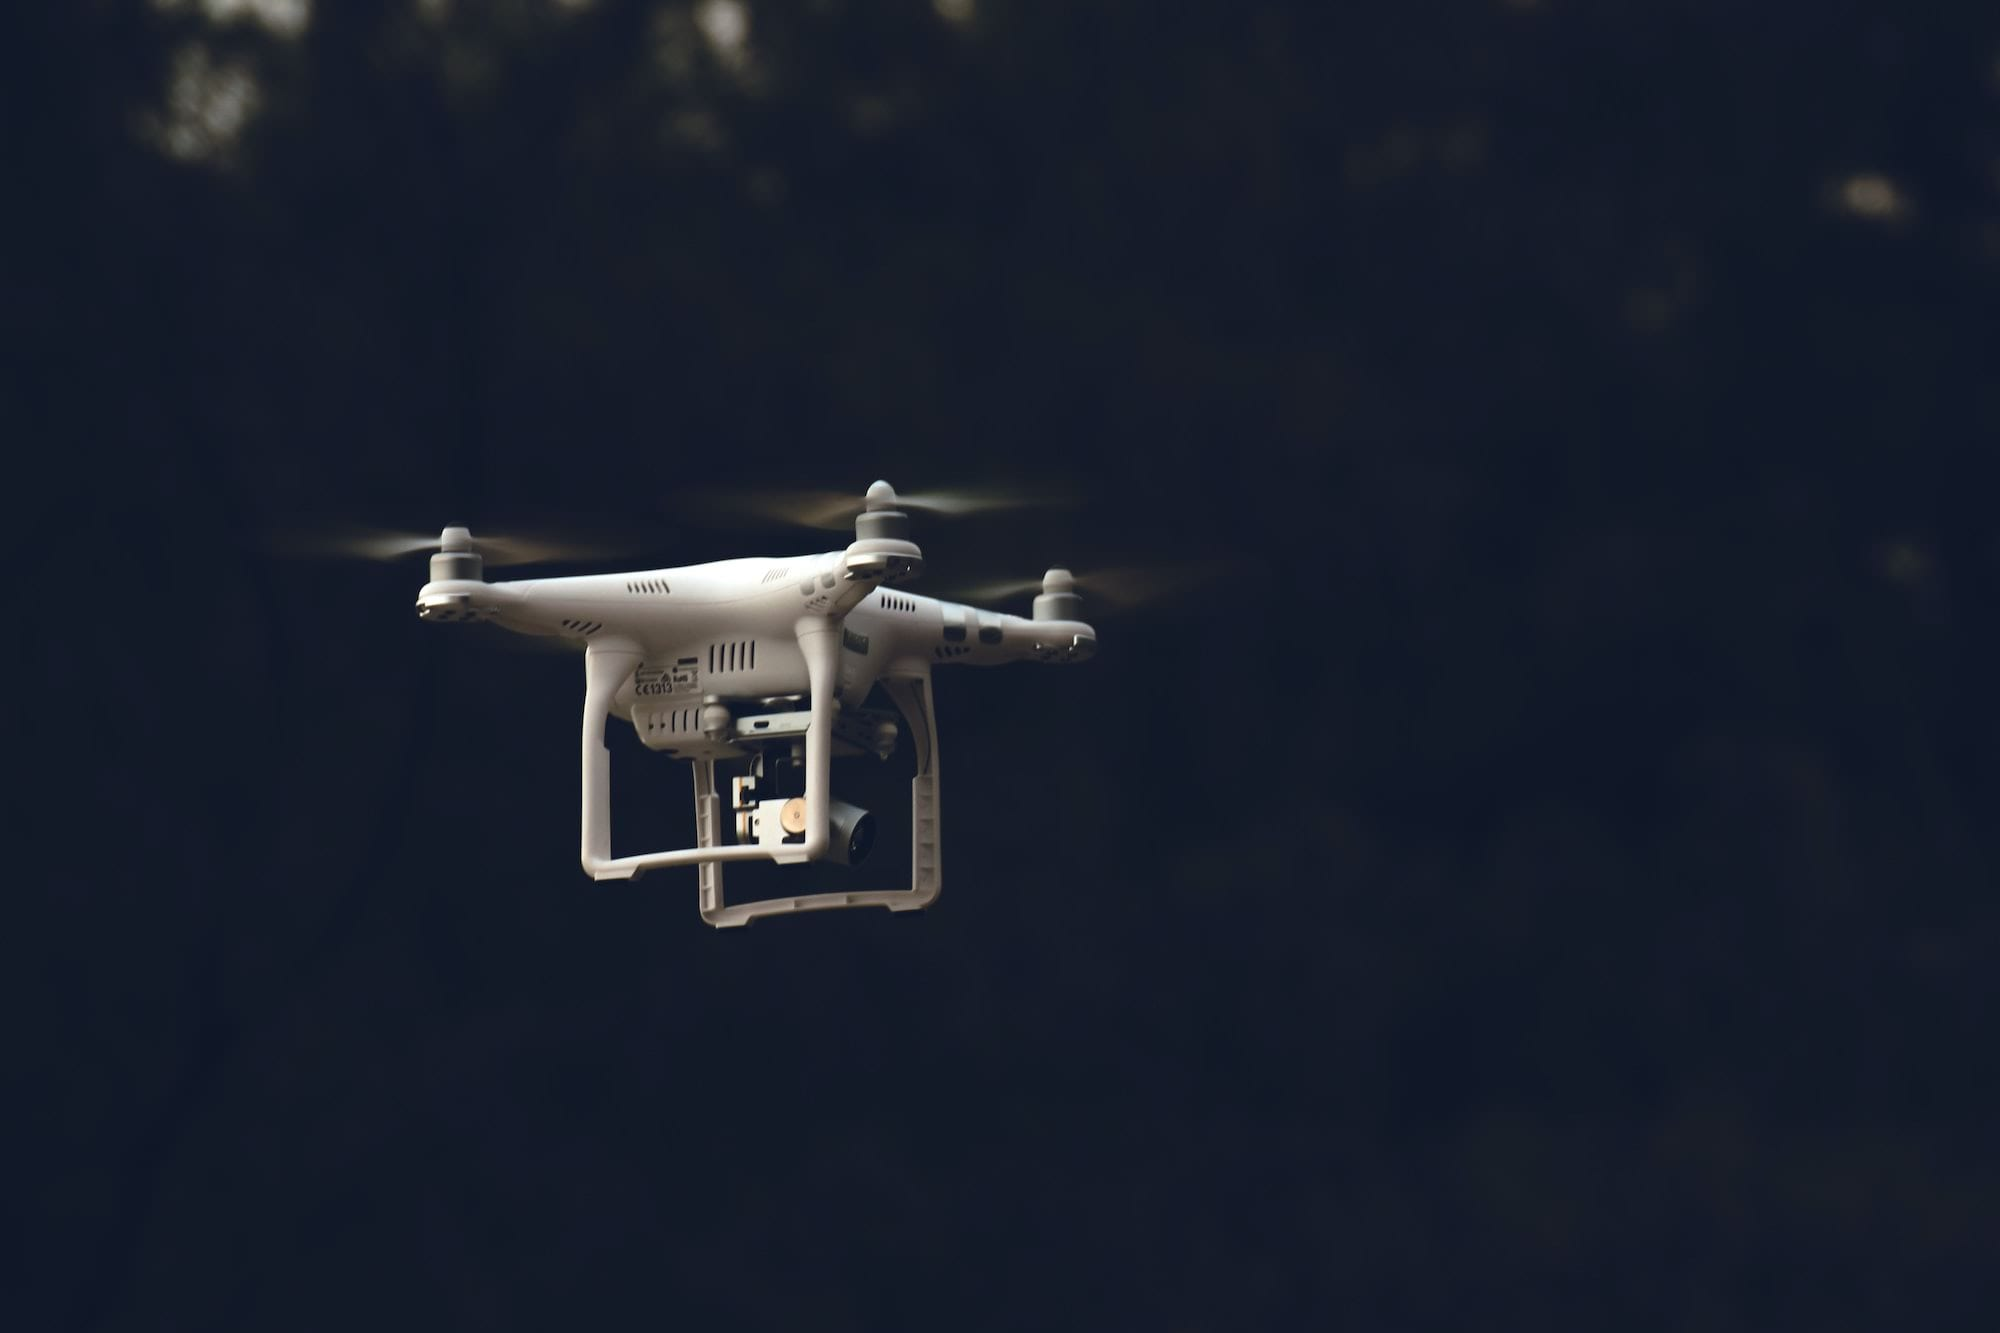 Legislation backed by ACLU restricts law enforcement's drone use in Minnesota